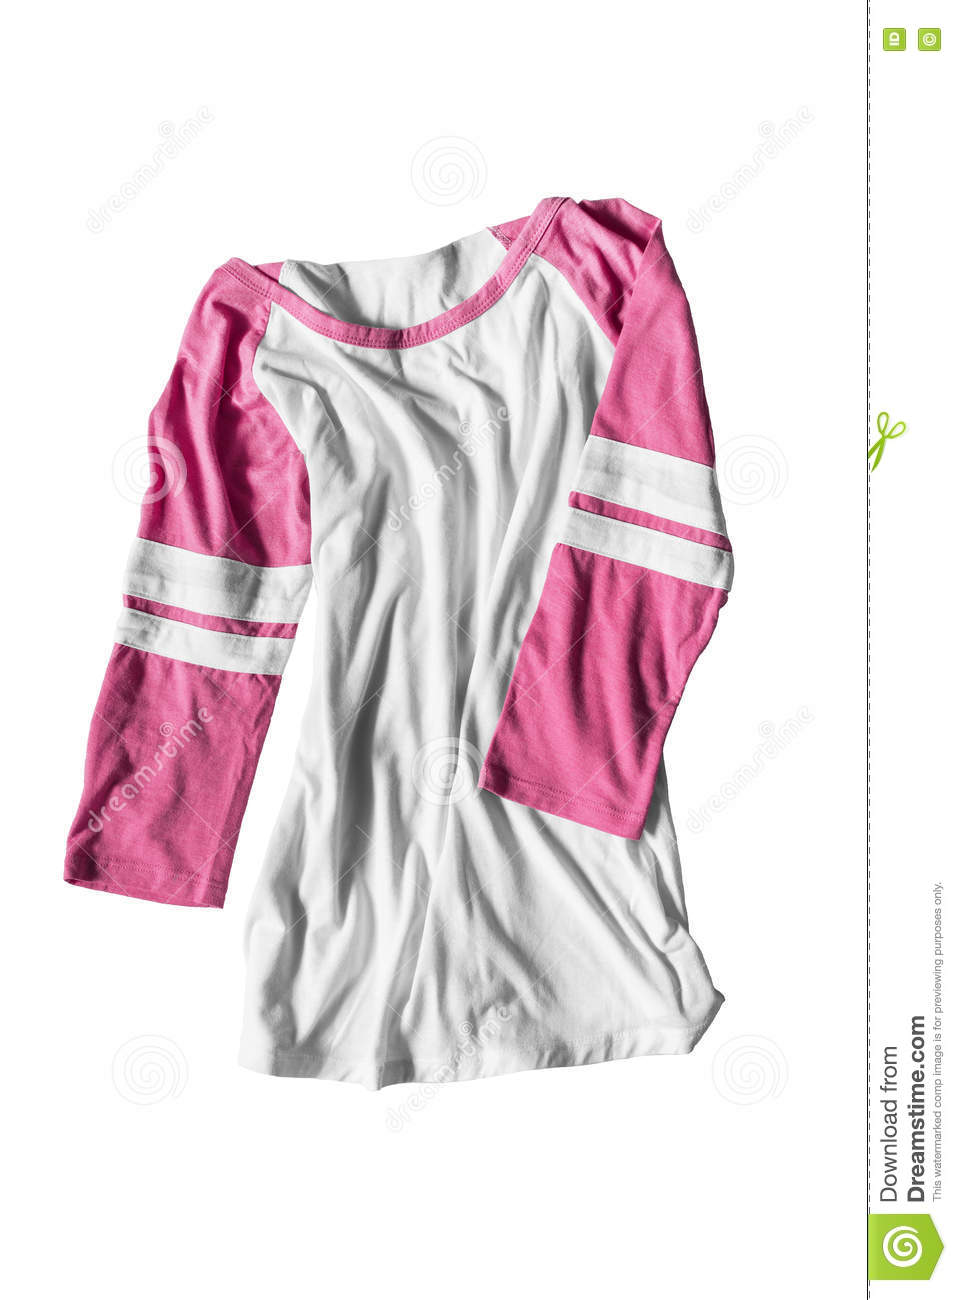 a56810f8 Crumpled sport shirt with pink sleeves on white background. More similar  stock images